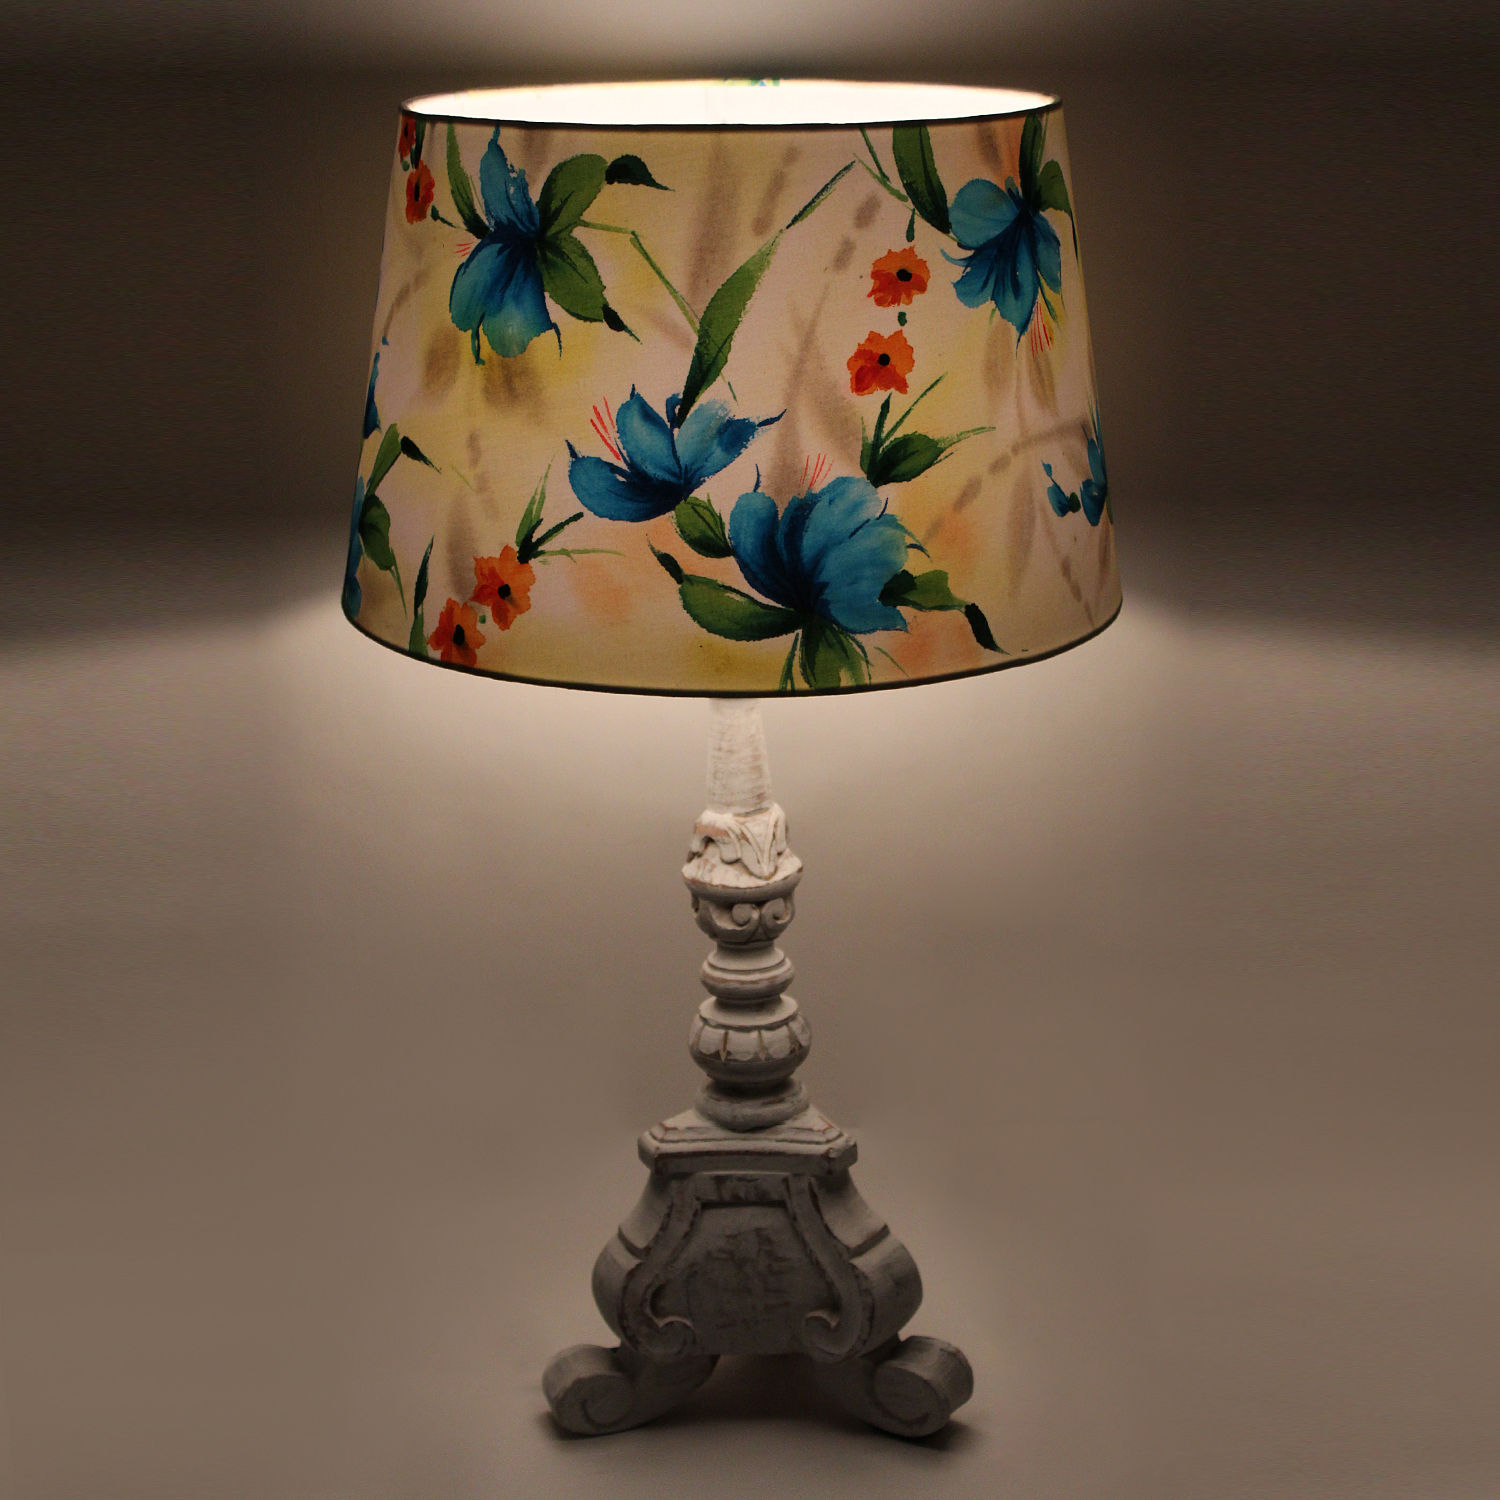 The decor mart butterfly garden hand painted lamp shade pack of 1 aloadofball Choice Image